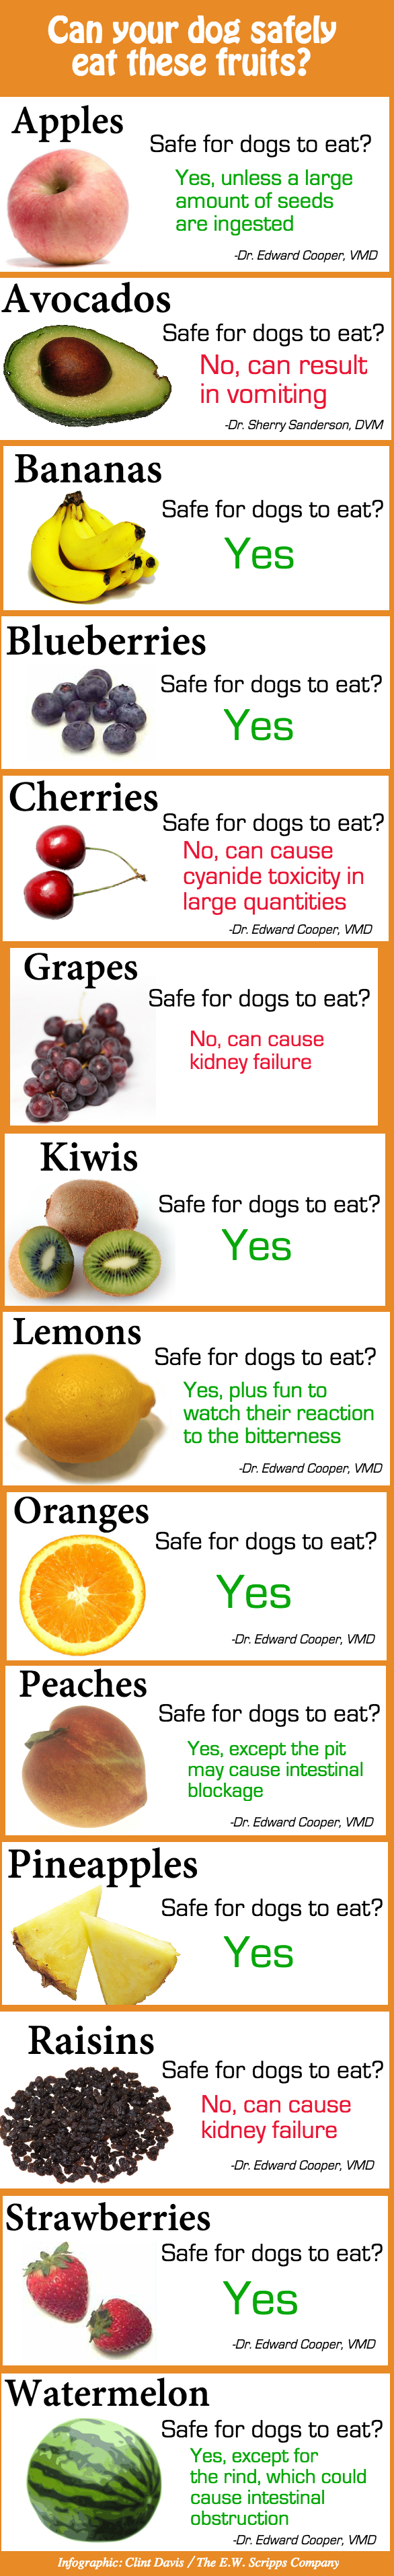 Can Your Dog Safely Eat These Fruits?